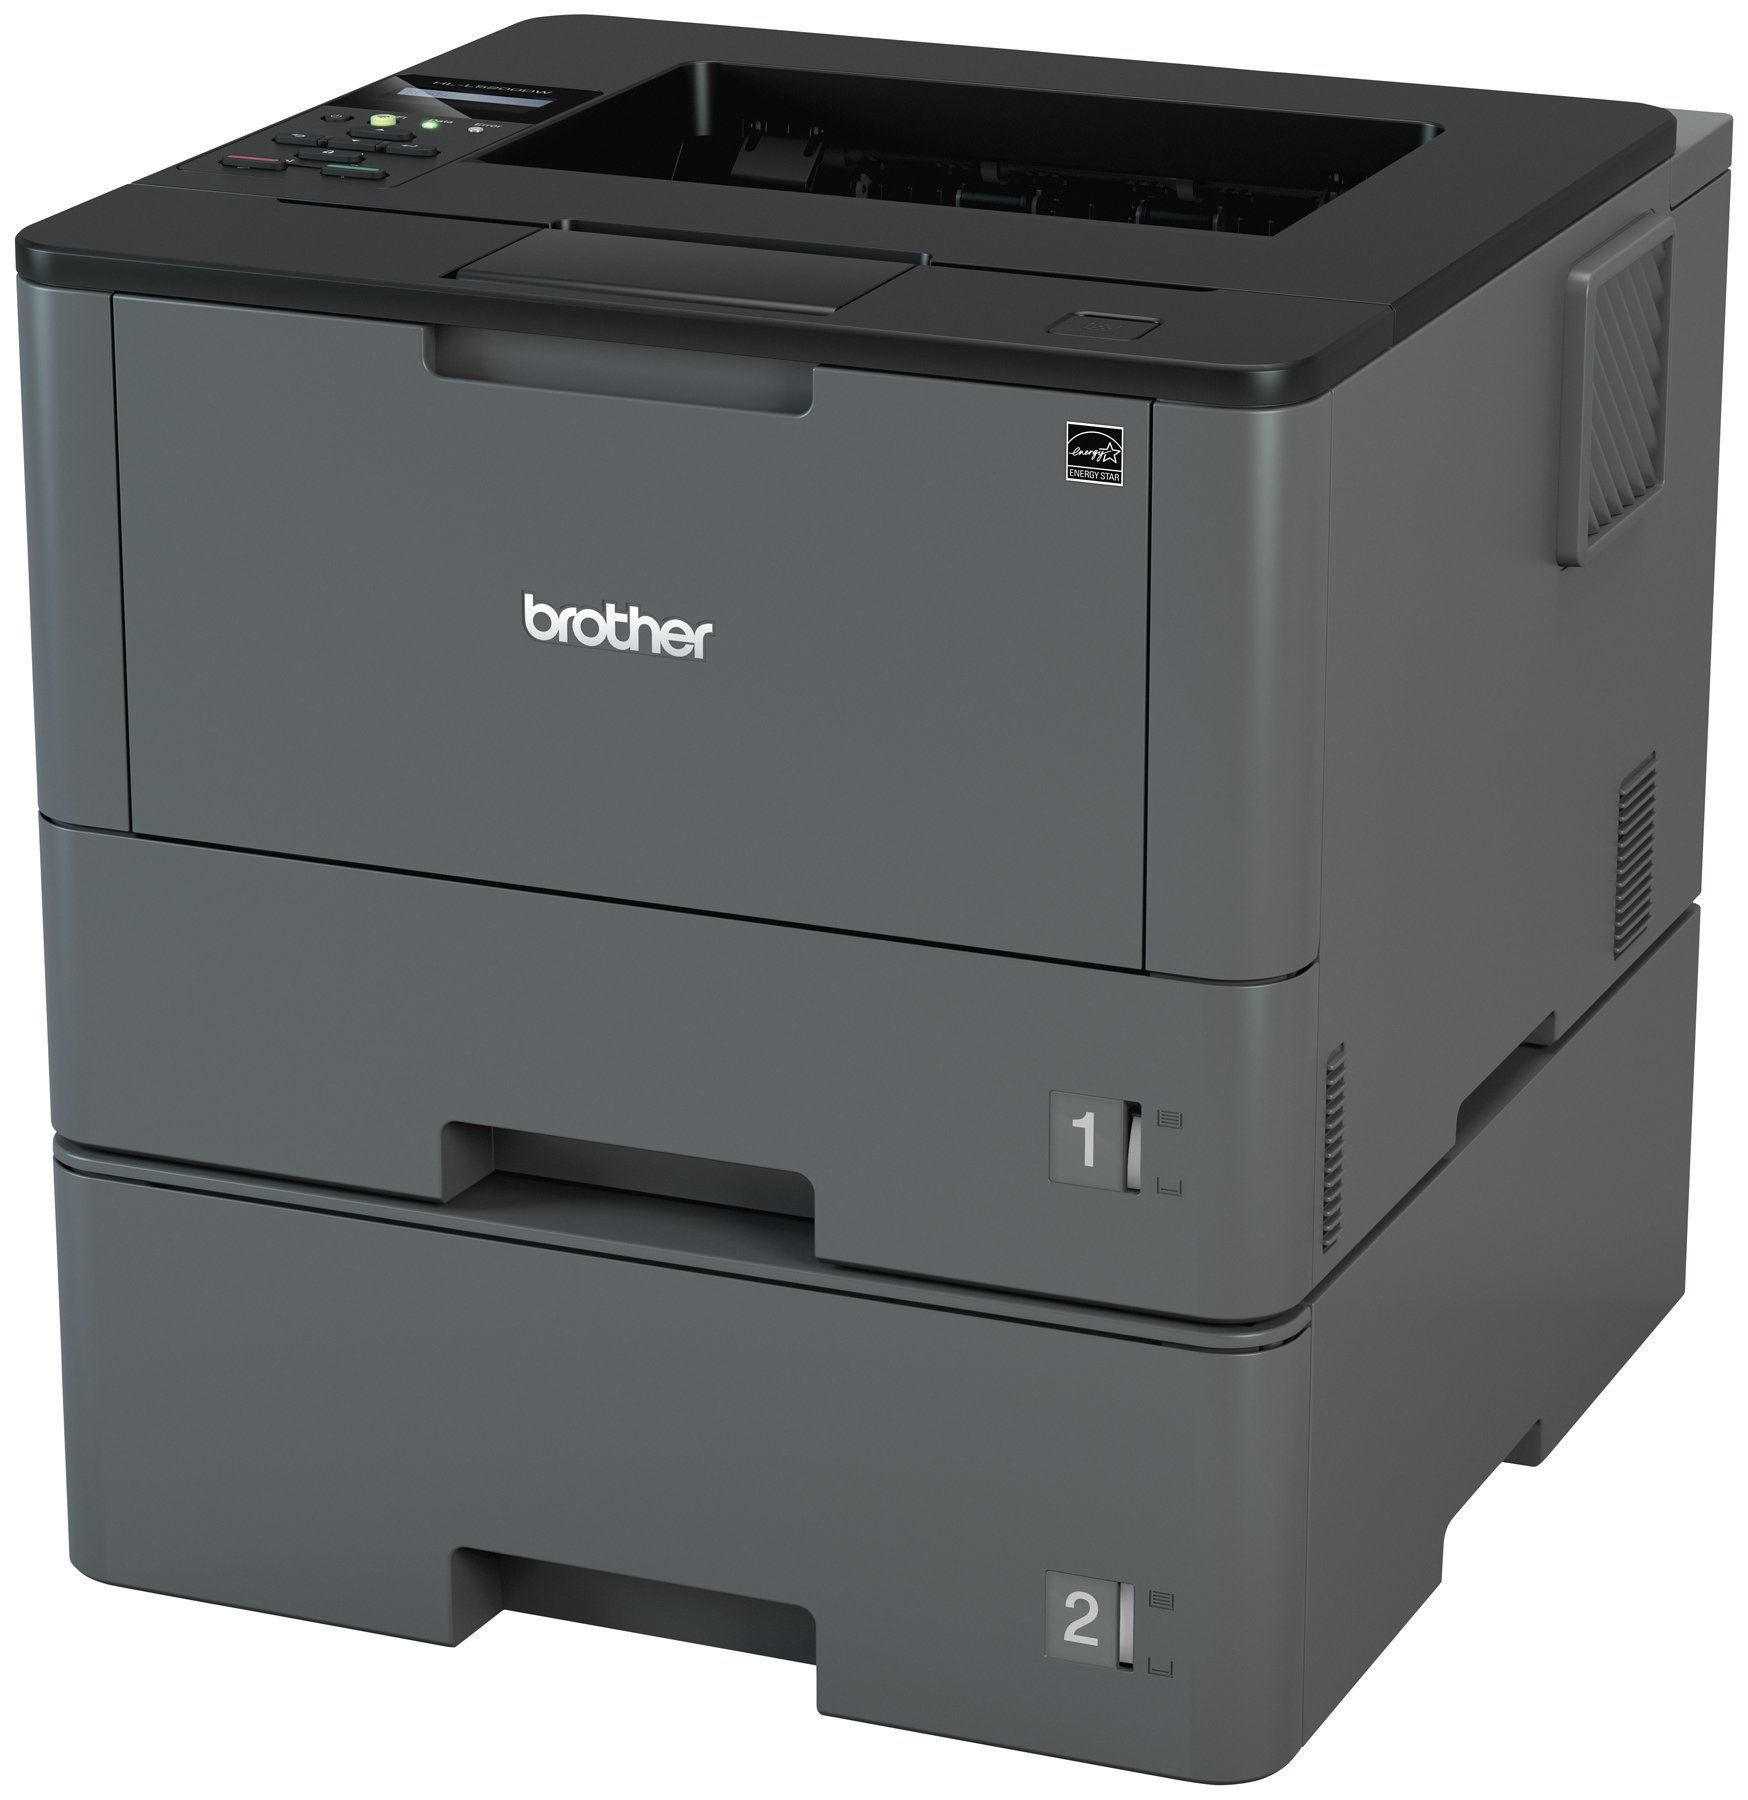 Brother HLL5200DWT Business Laser Printer with Wireless Networking, Duplex and Dual Paper Trays, Amazon Dash Replenishment Enabled by Brother (Image #2)